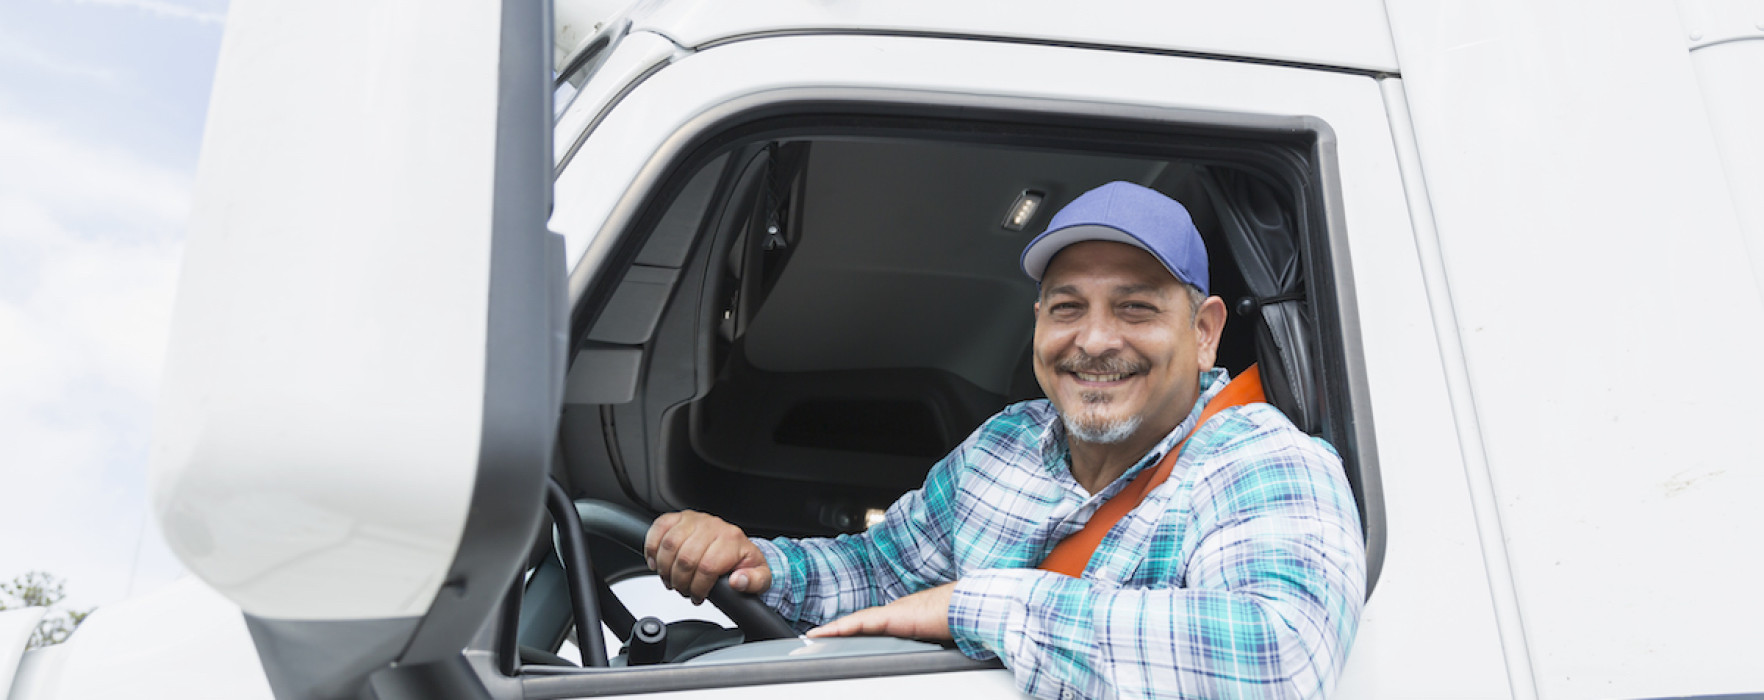 Five Reasons You Should be a Trucker